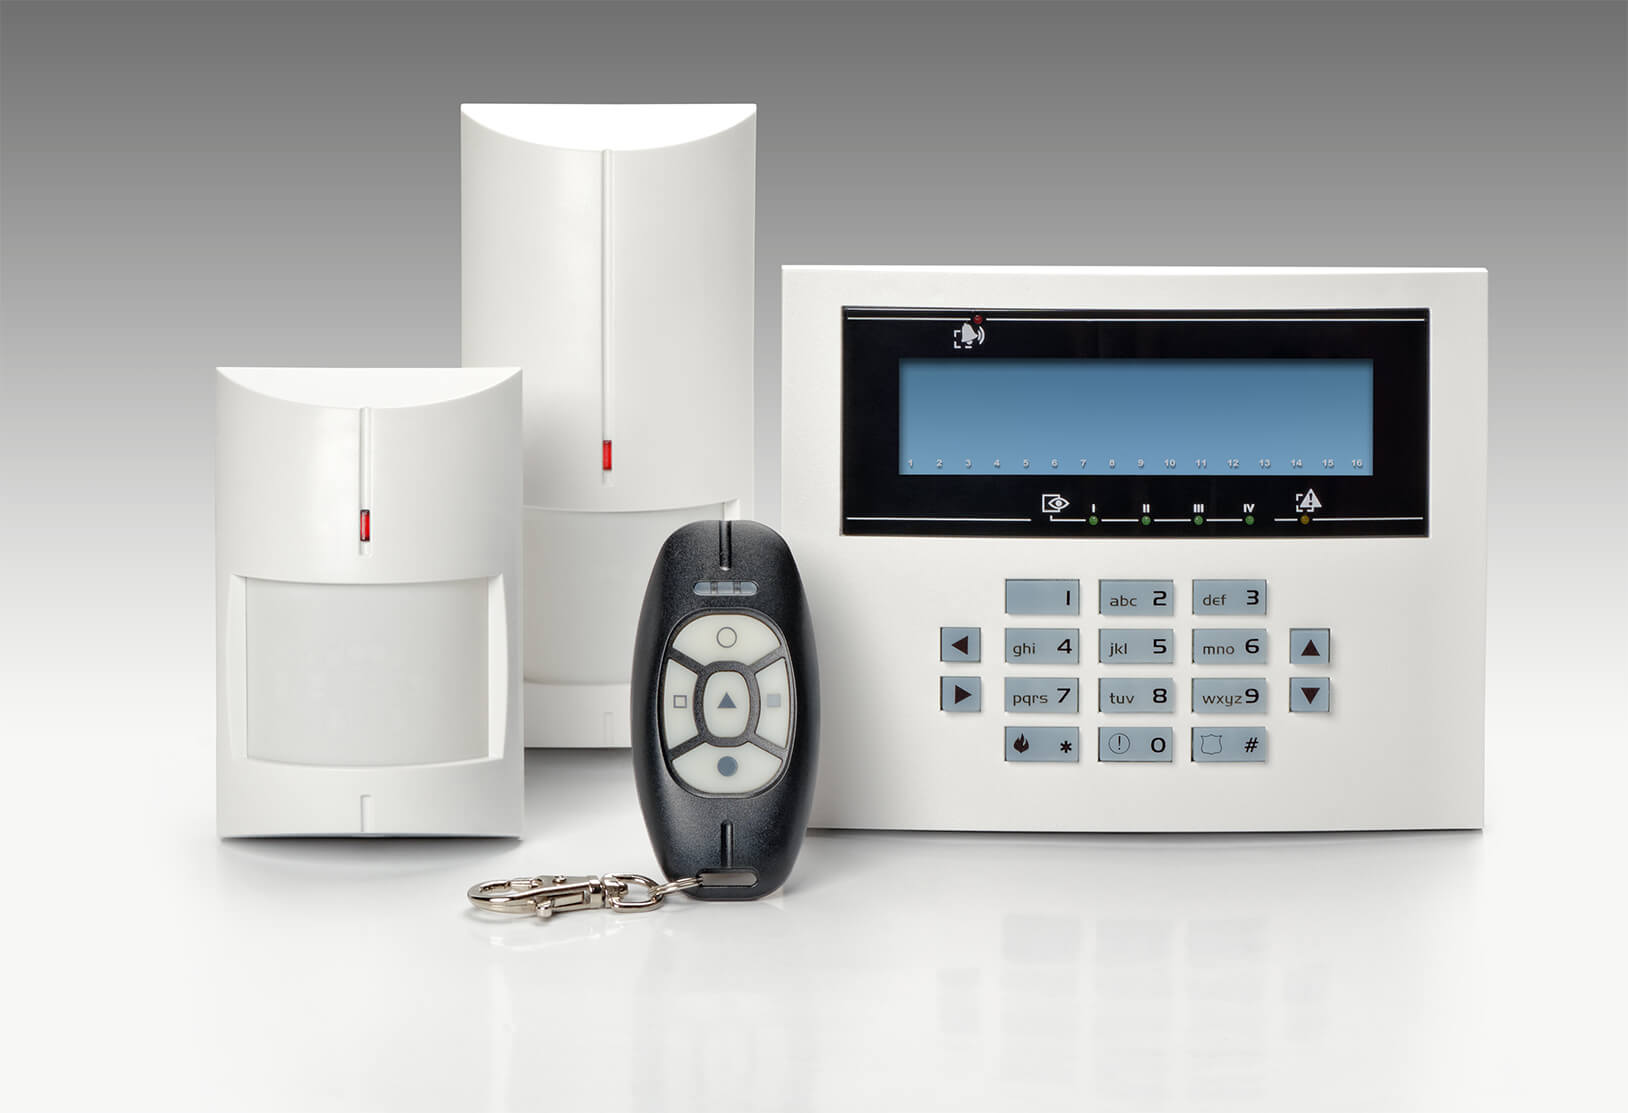 Commercial Burglar Alarms For Business in Barnsbury N1  - Local Barnsbury N1 burglar alarm company.Call 02078872244 - Dedicated to Safety & Security. Companies, shops and homes ..